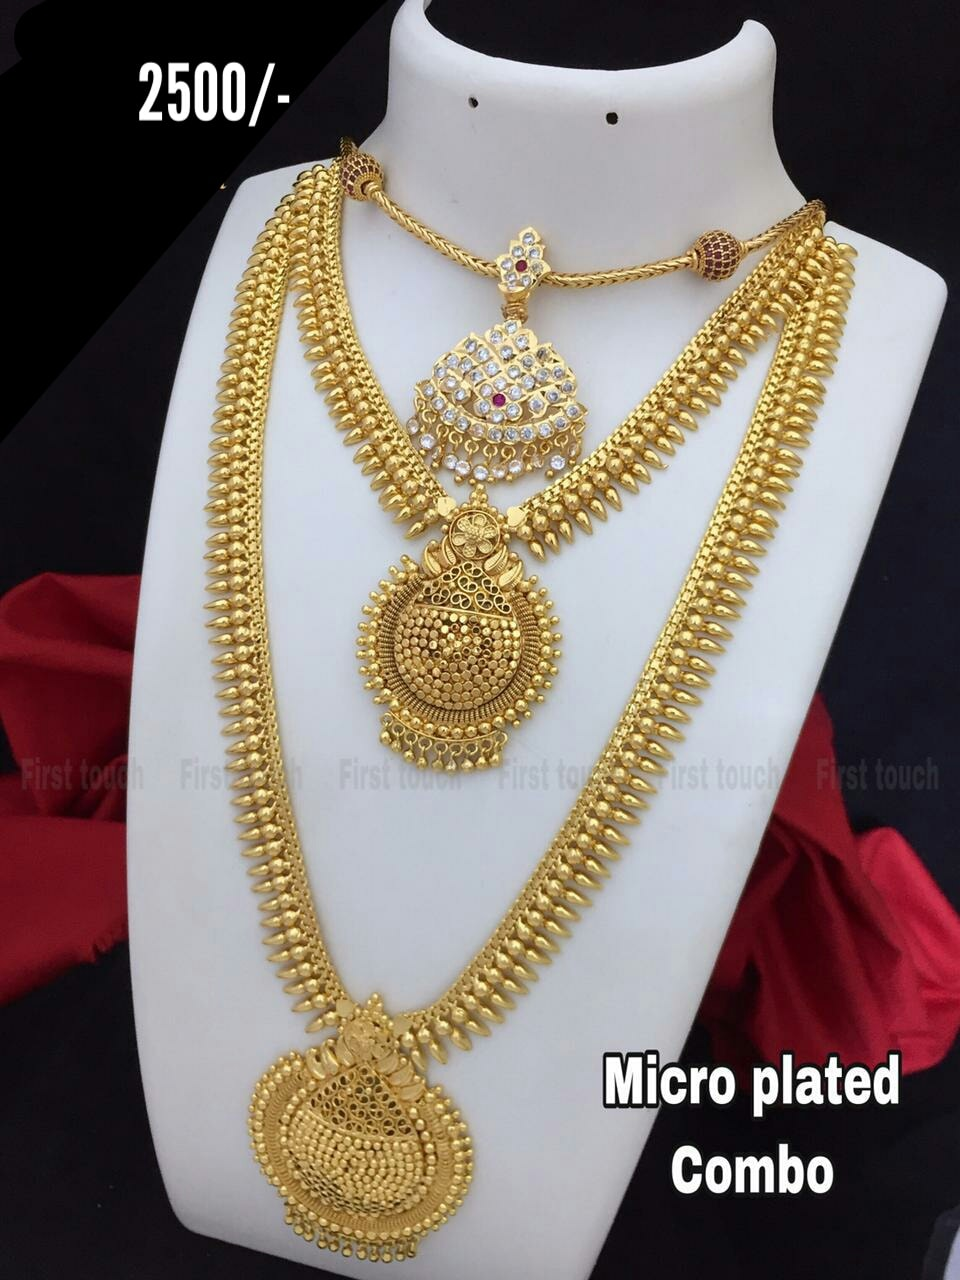 Beautiful  matte finish premium quality micro plated combo set. Price : 2500/ one gram gold chain online 1 gram jewellery online shopping one gram temple jewellery